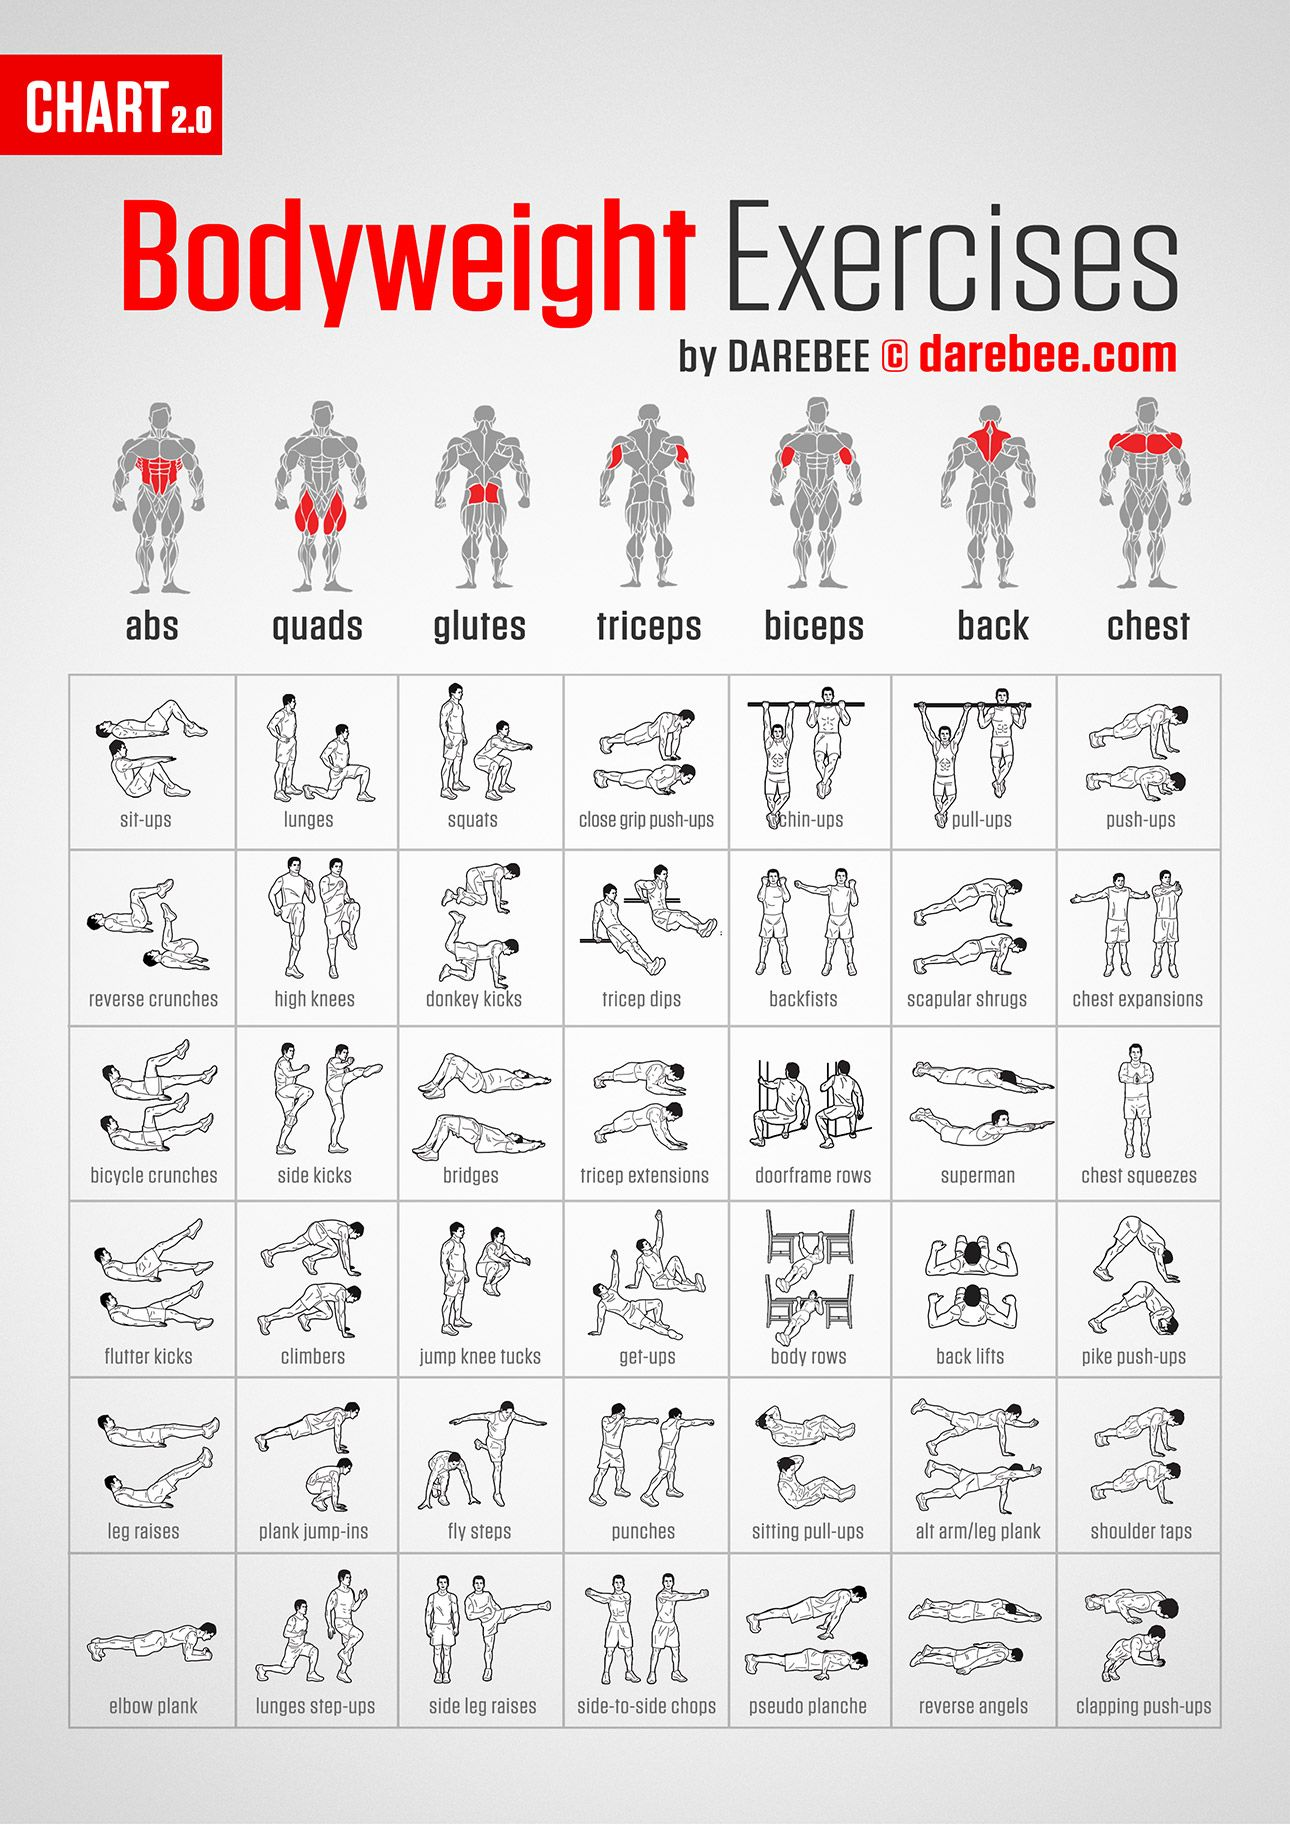 Bodyweight HIIT Exercises You Can Do At Home It Even Has A Timer Just Click On The Day Hit And Workout